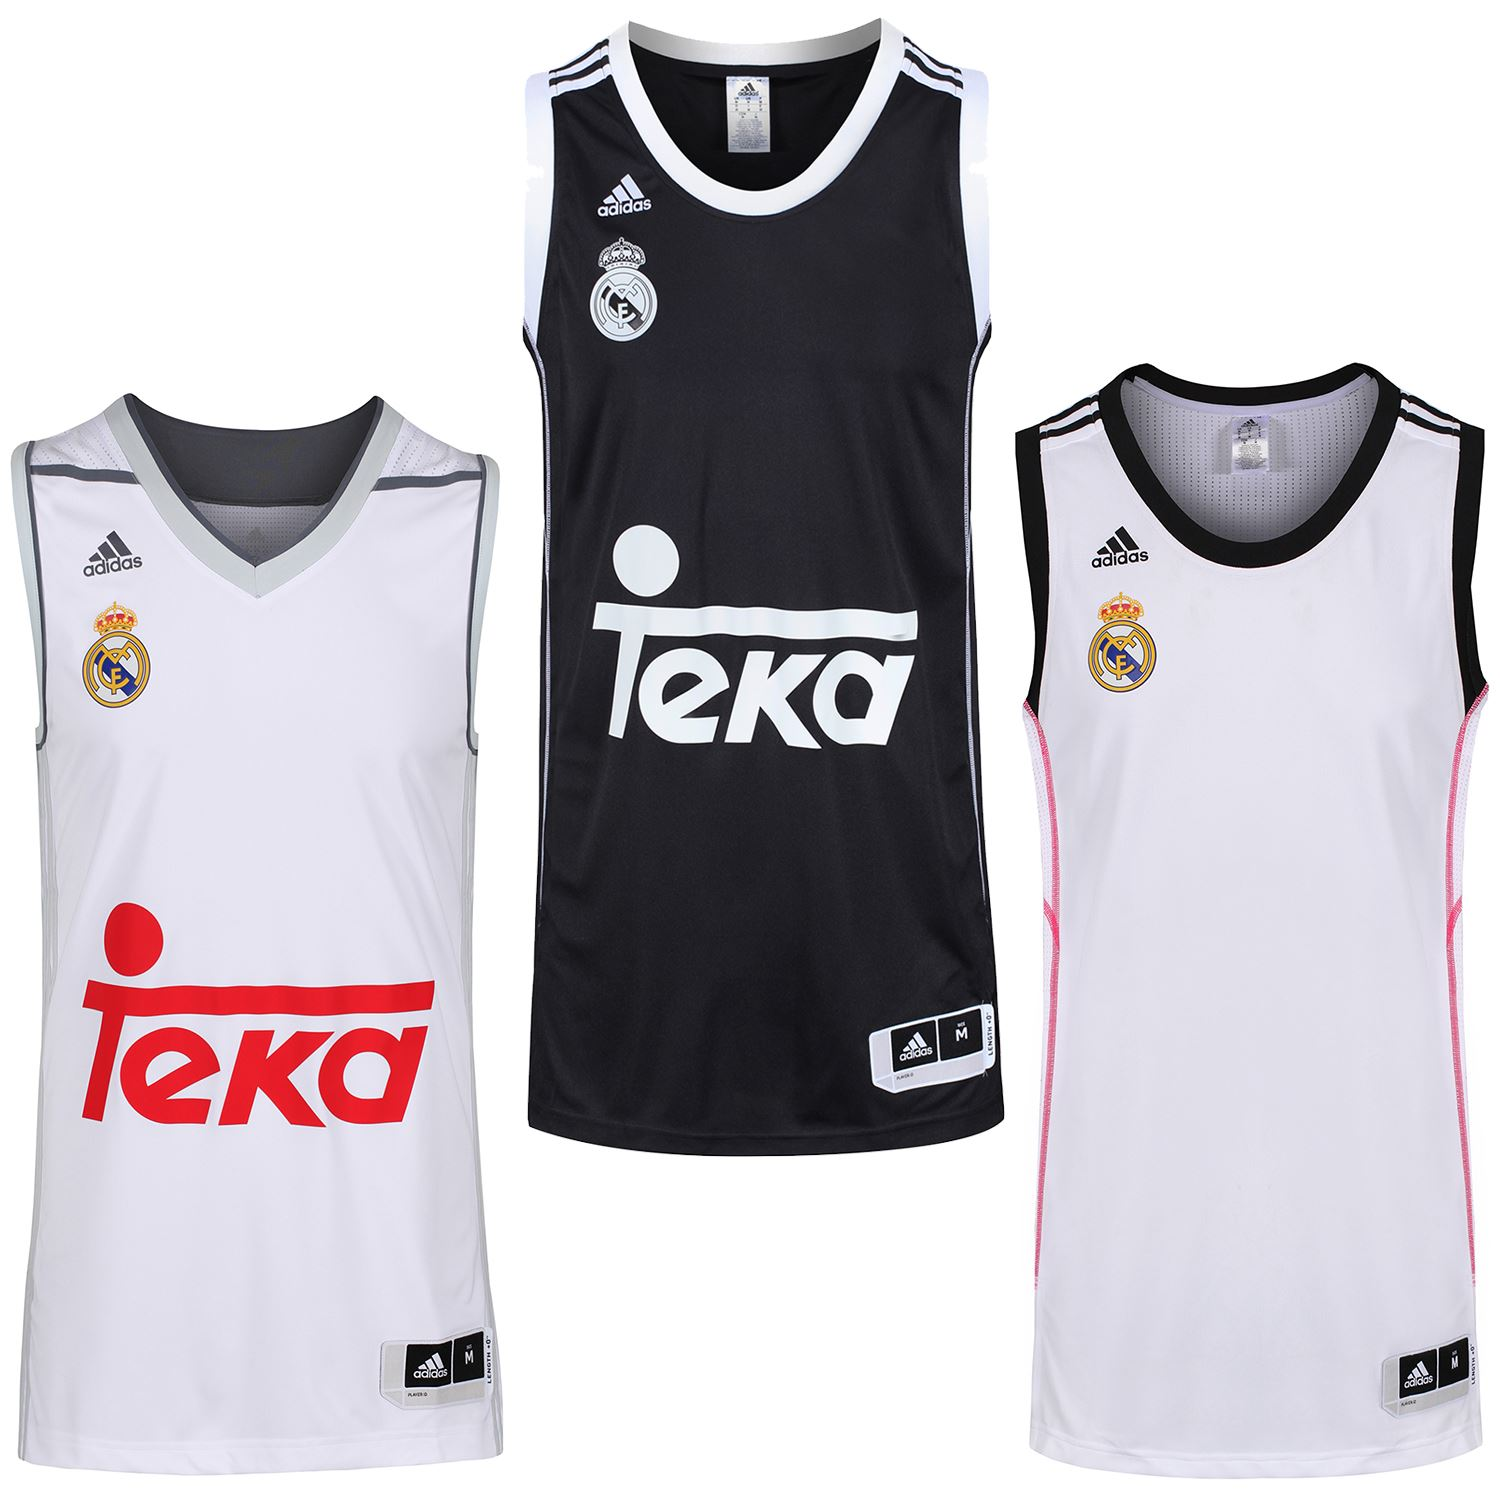 info for 872ce b01a1 Details about adidas REAL MADRID BASKETBALL JERSEYS TOP MEN'S S M L 4XL  SPAIN VEST SHIRT